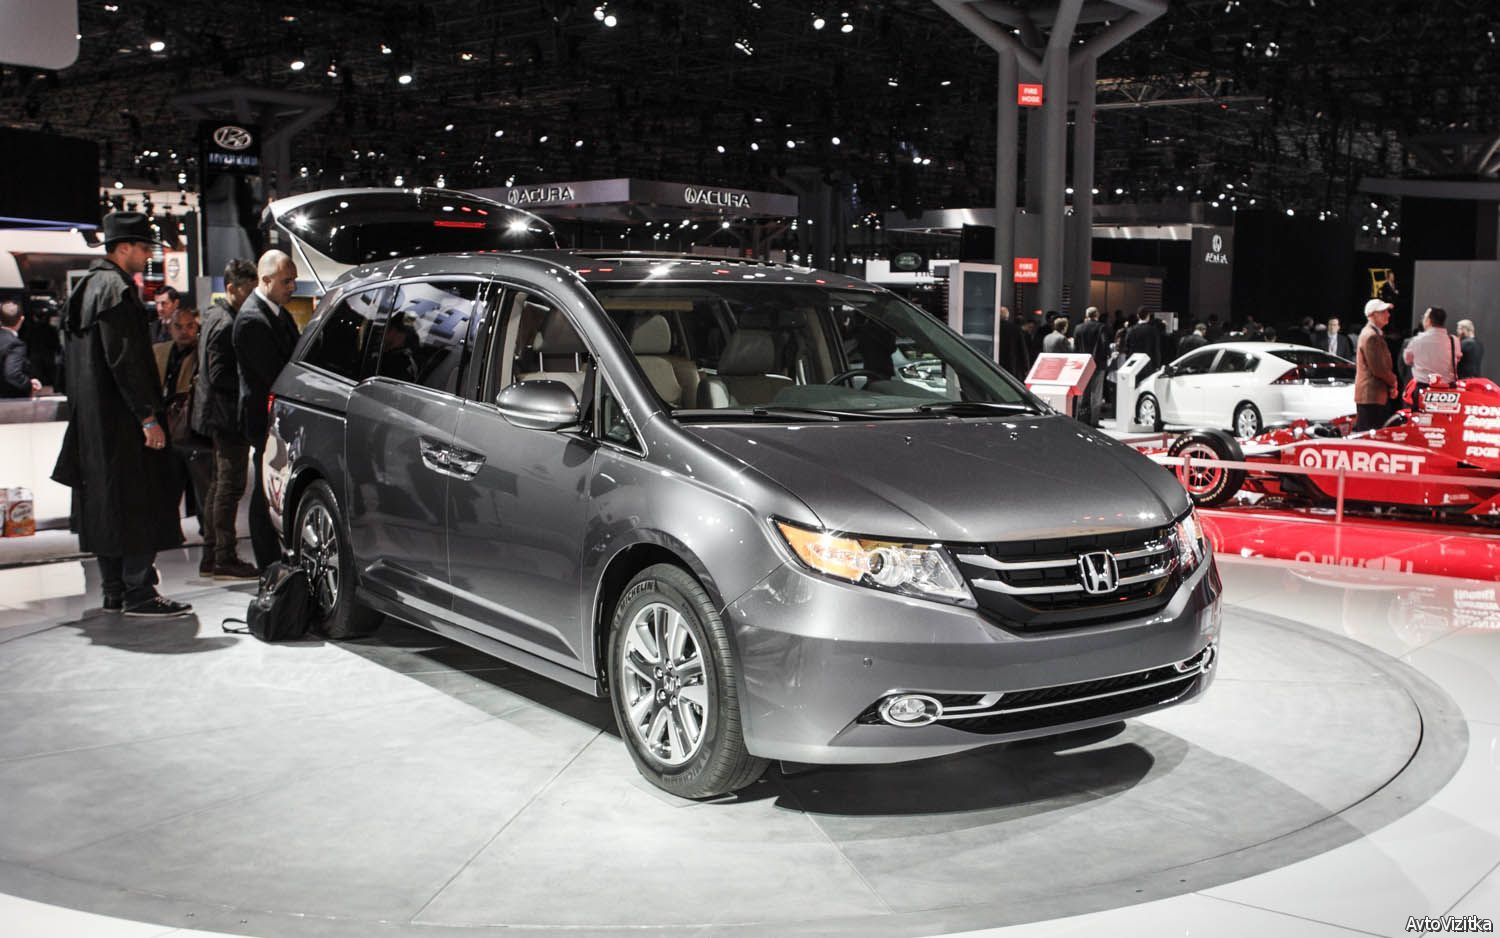 2016 honda odyssey hybrid awd review http futurecarrelease net 2016